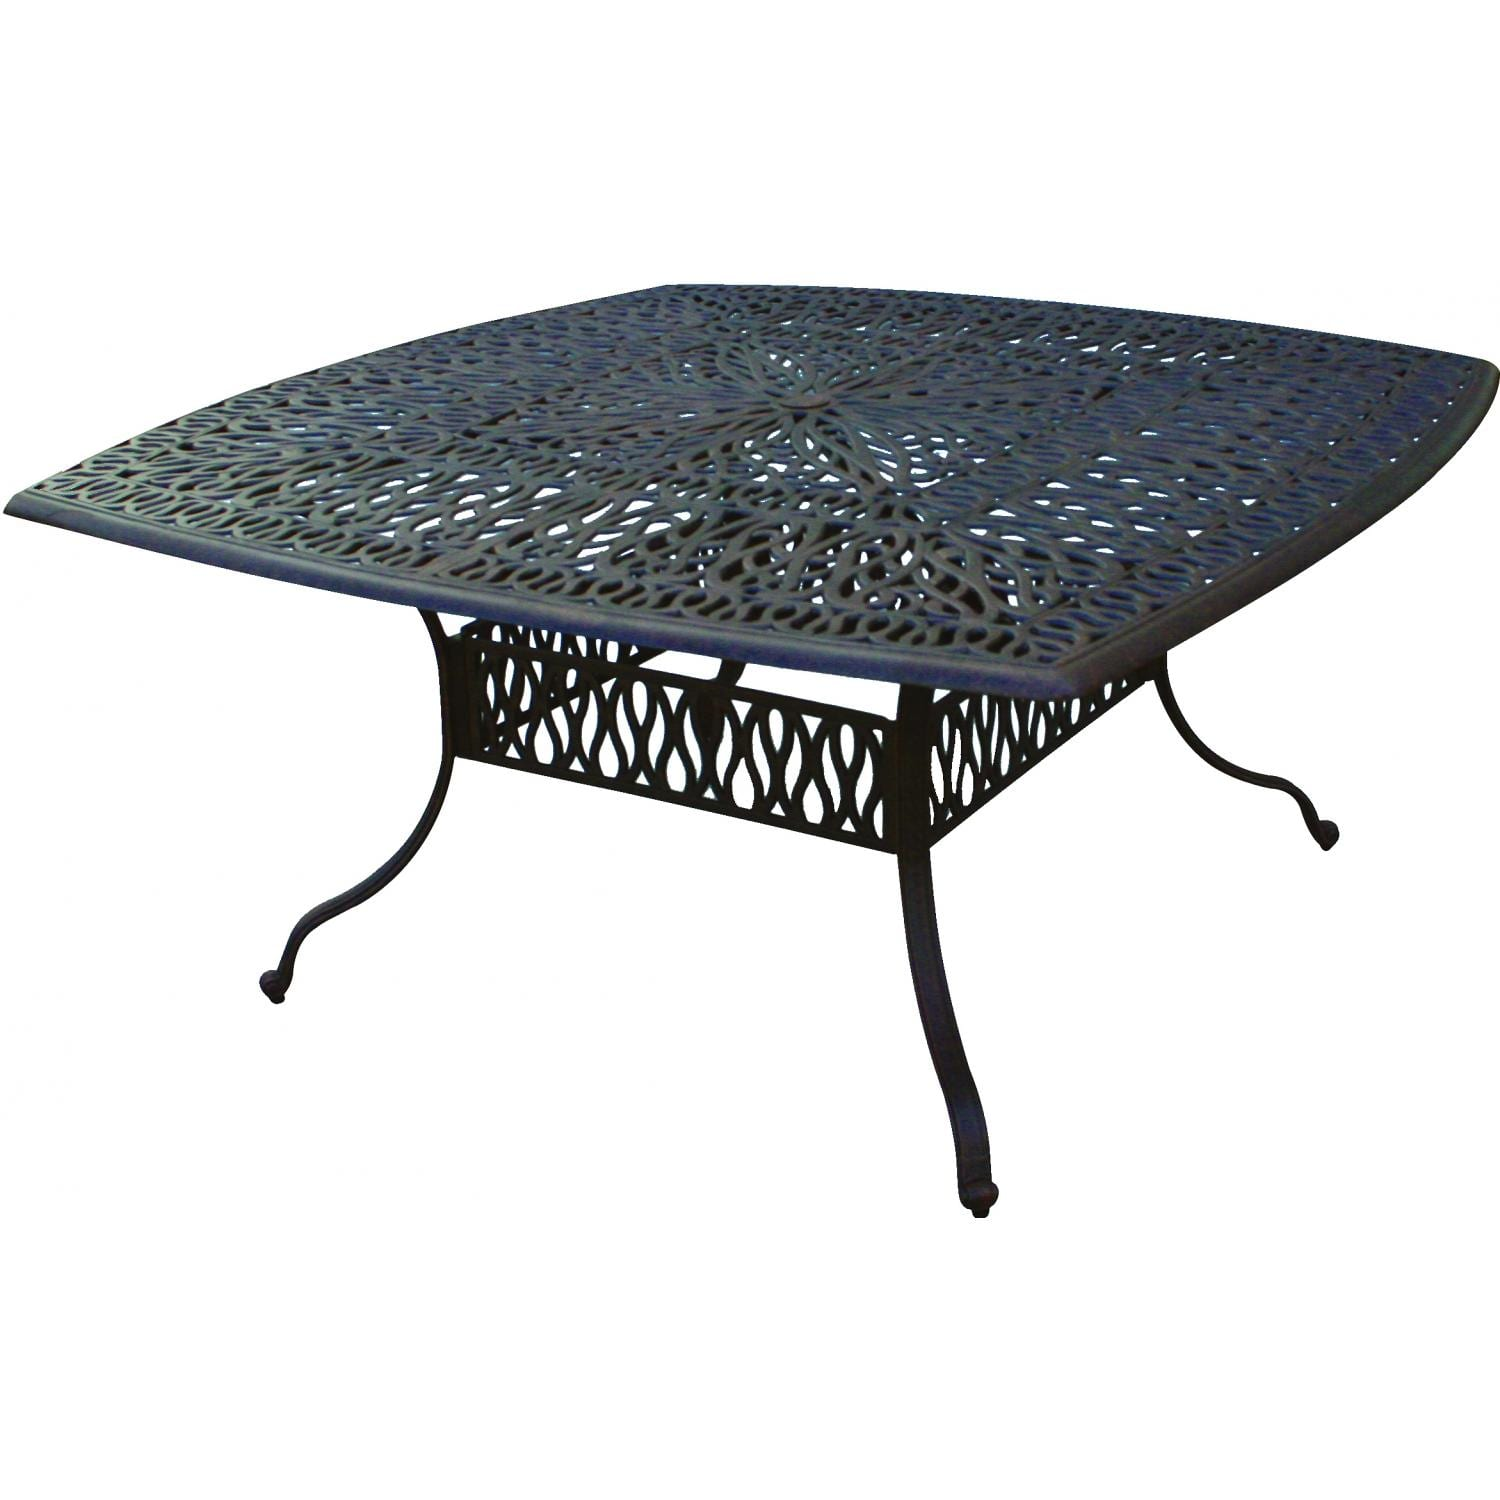 Darlee Elisabeth 64-Inch Cast Aluminum Patio Dining Table